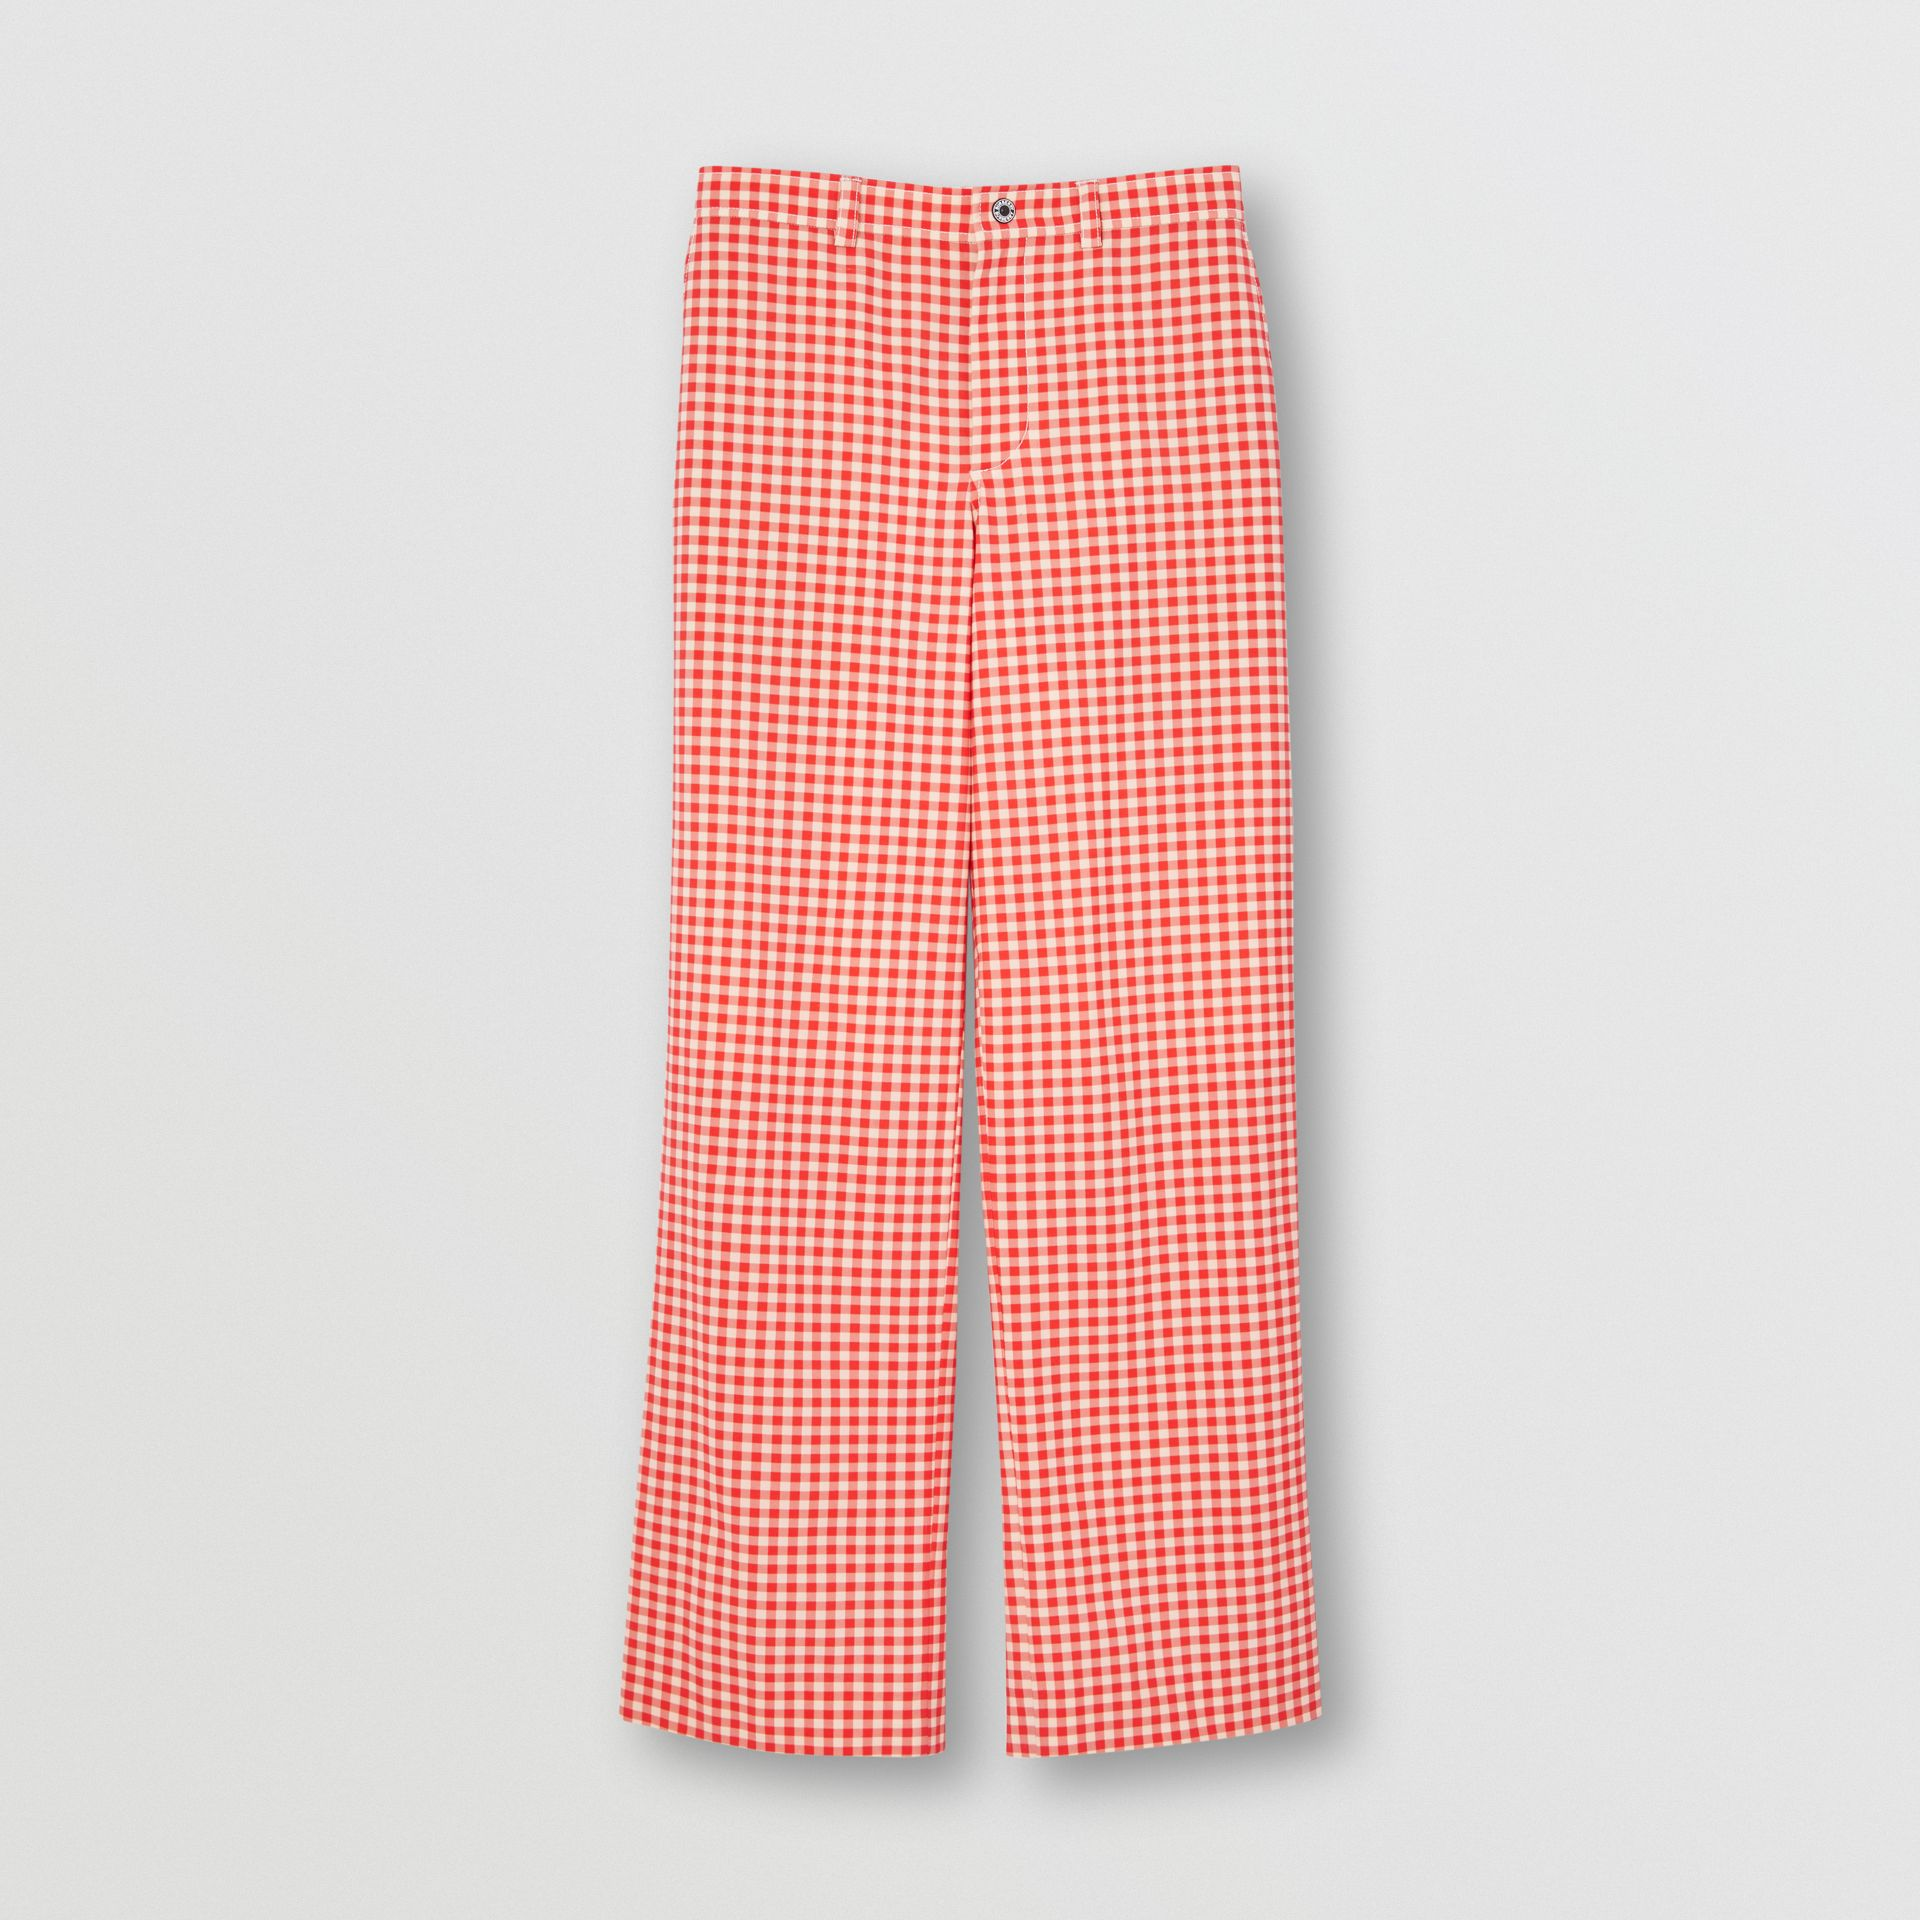 Cut-out Back Gingham Stretch Cotton Trousers in Red | Burberry - gallery image 3